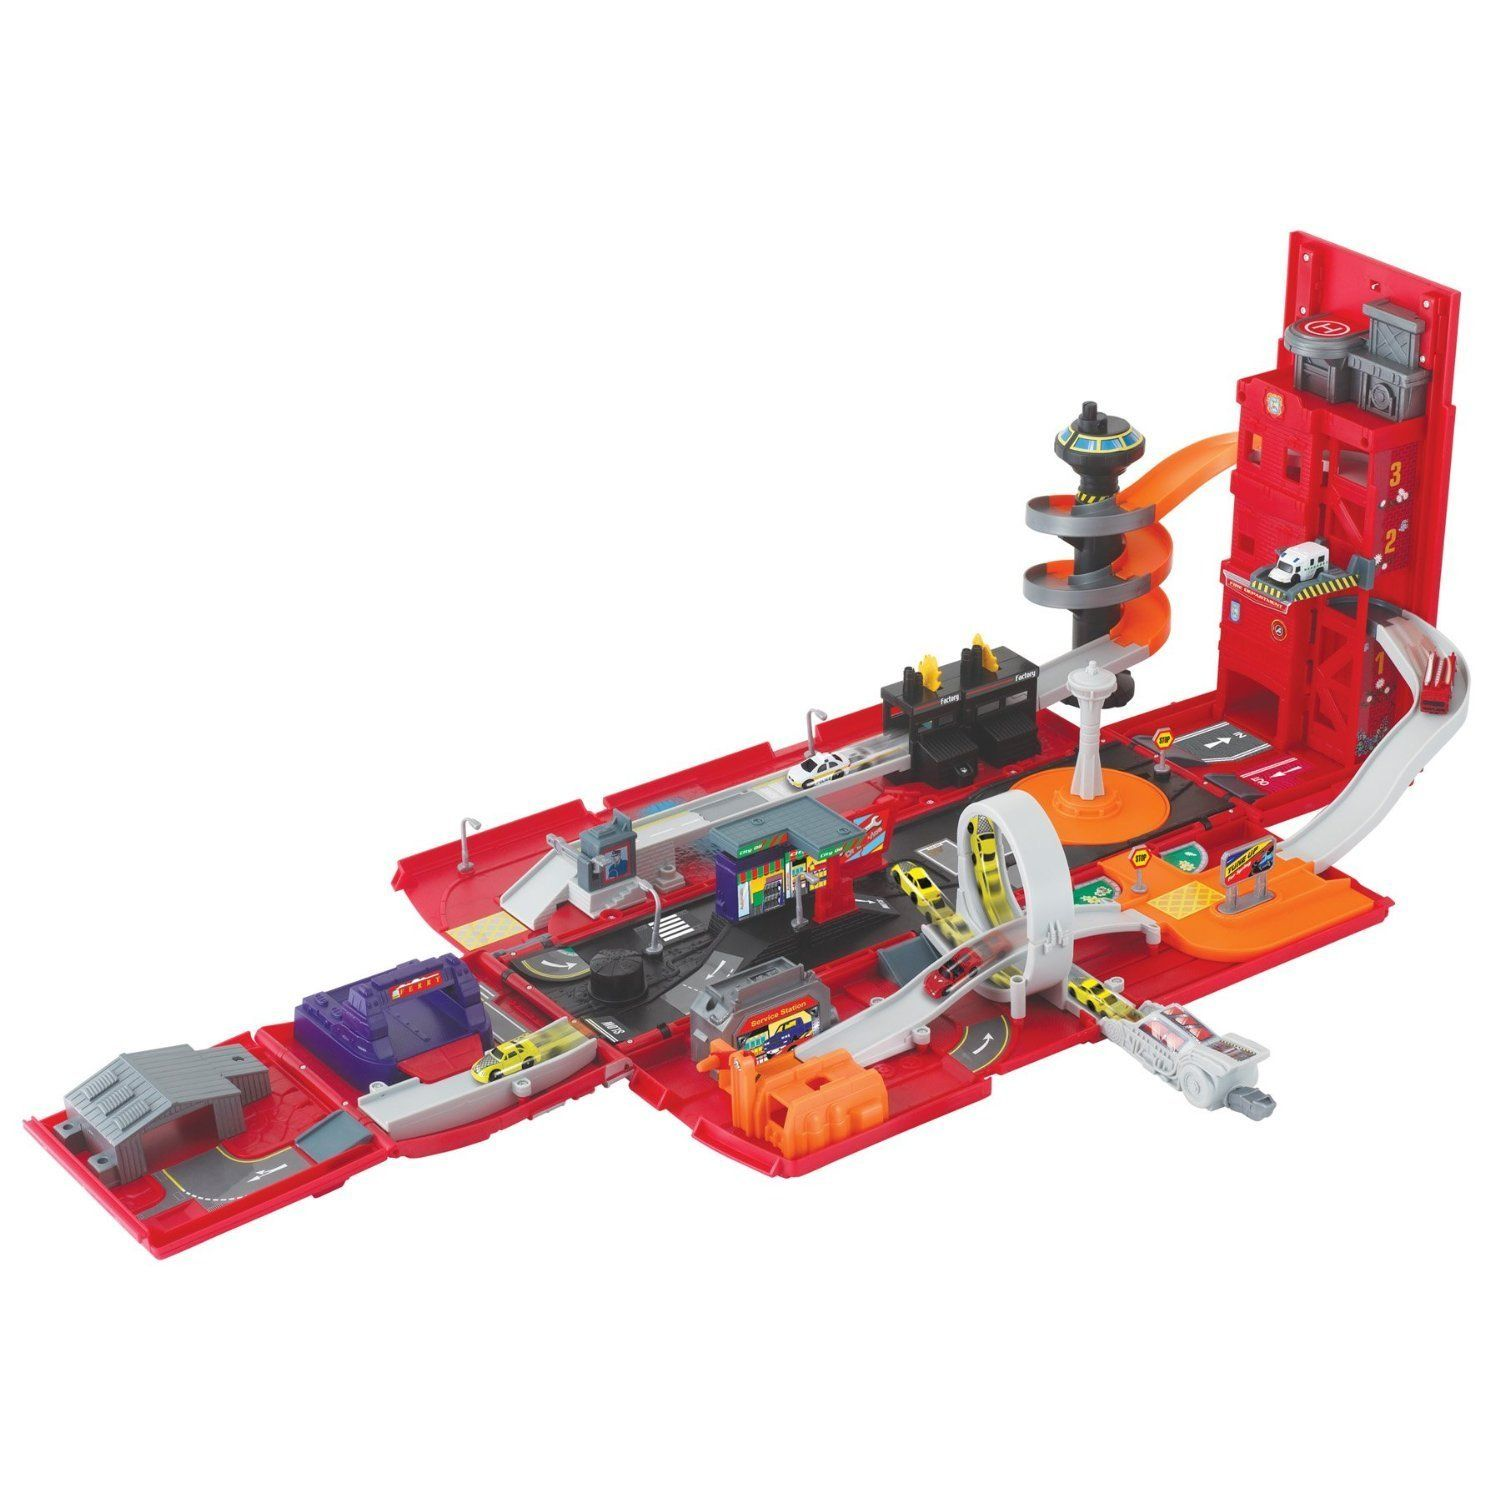 Childrens Takealong Folding Fire Station Playset, 5 vehicles included